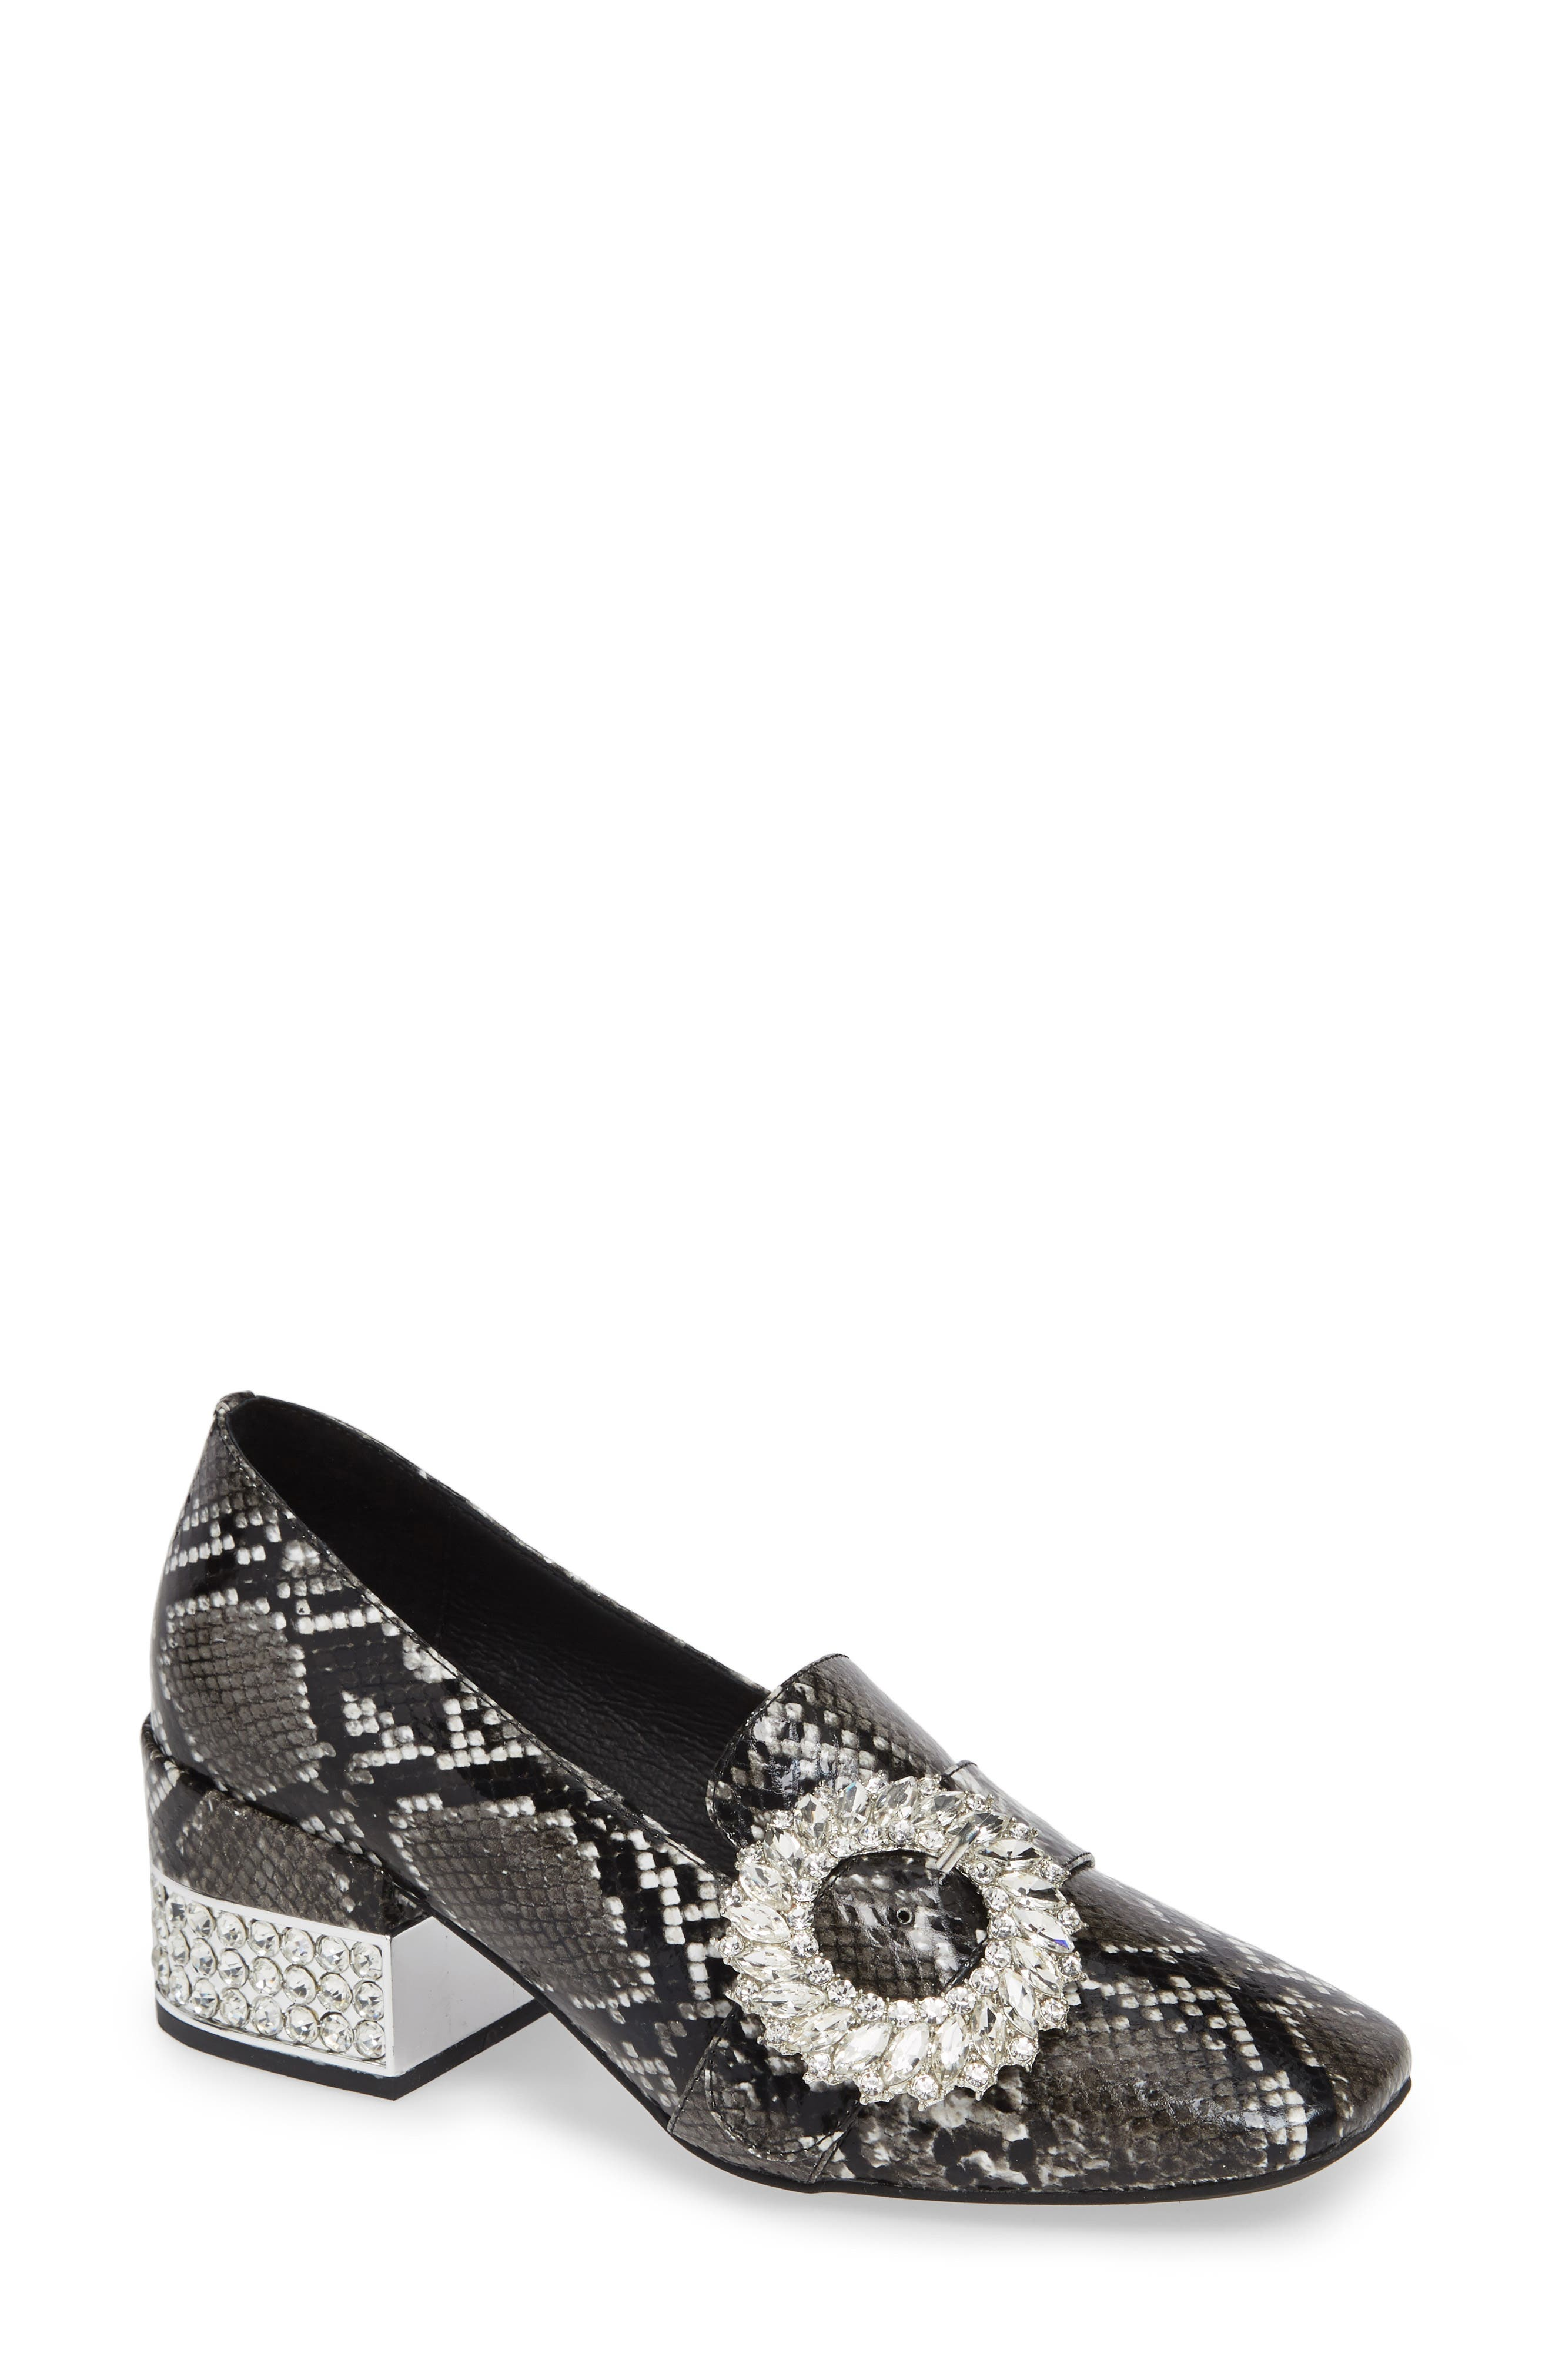 Louisa Pump,                             Main thumbnail 1, color,                             SNAKE PRINT LEATHER/ SILVER